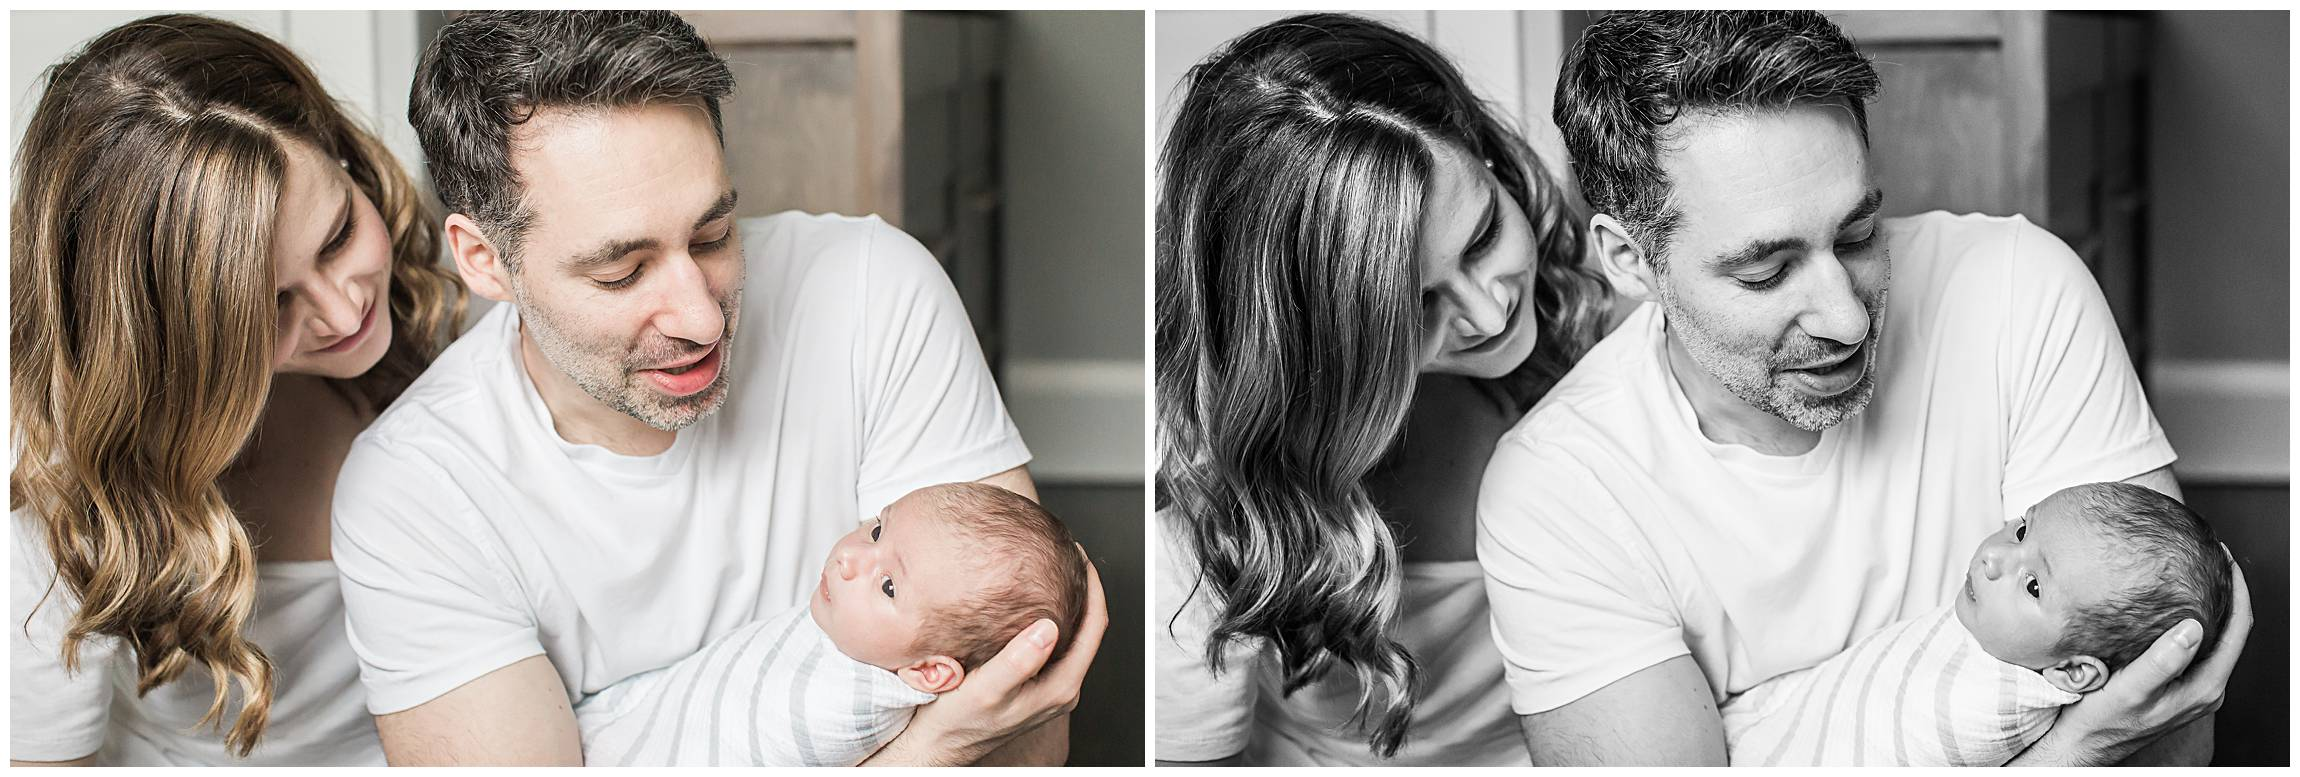 Rosedale newborn portrait session